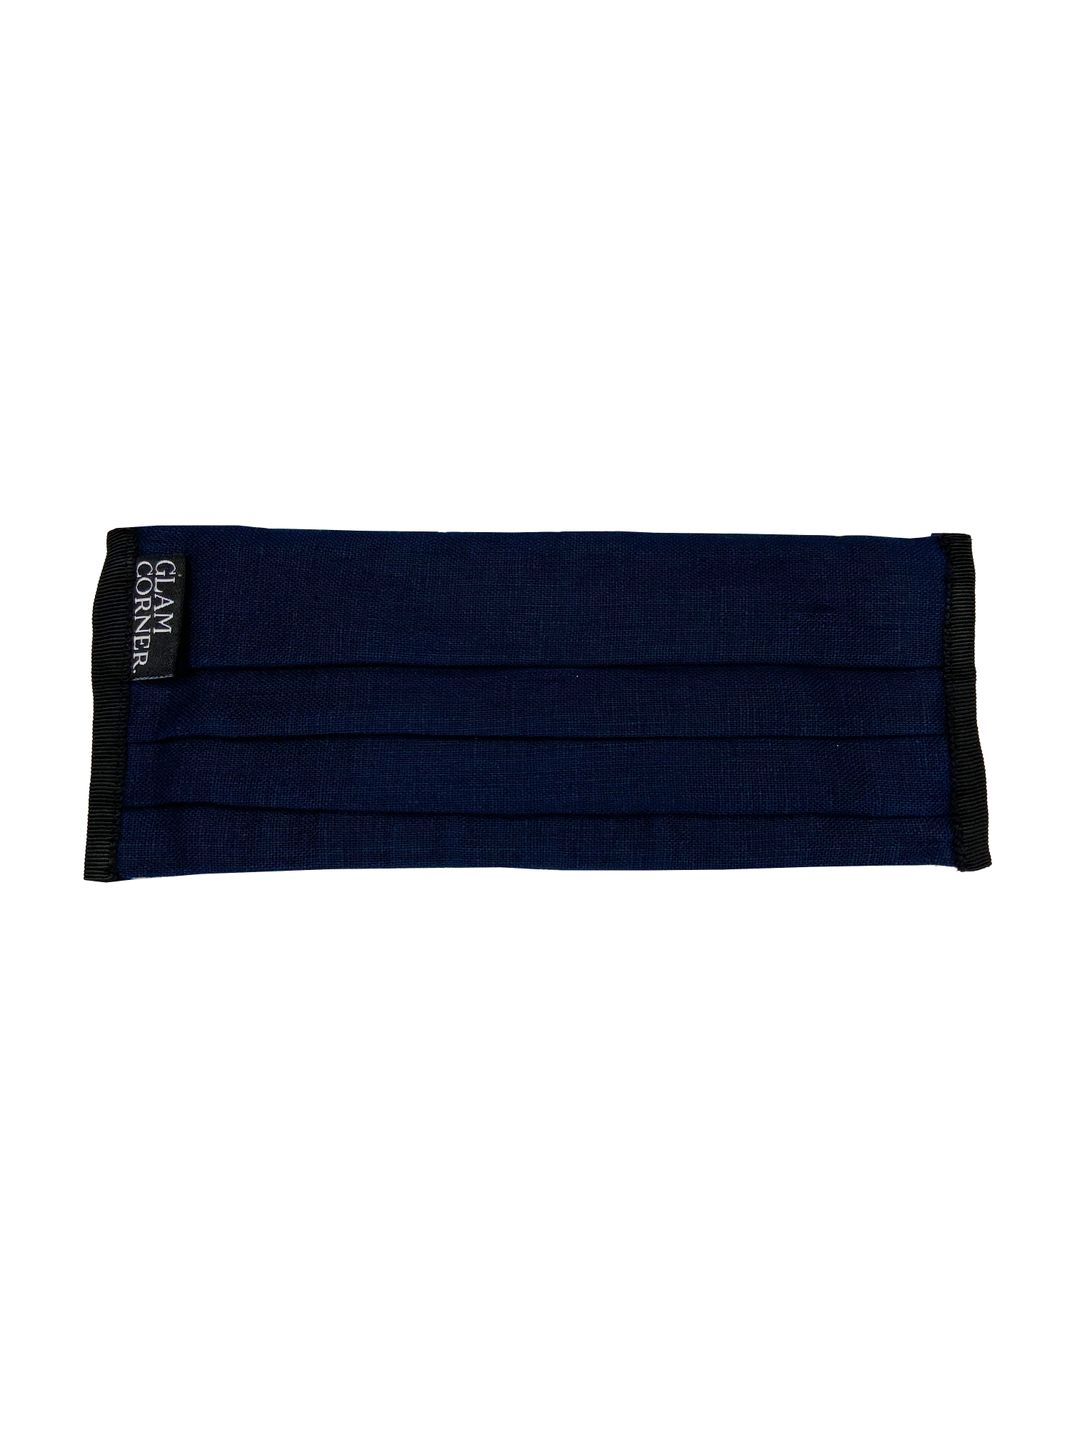 GlamCorner-Fabric-Face-Mask-Navy-Blue-Front-new